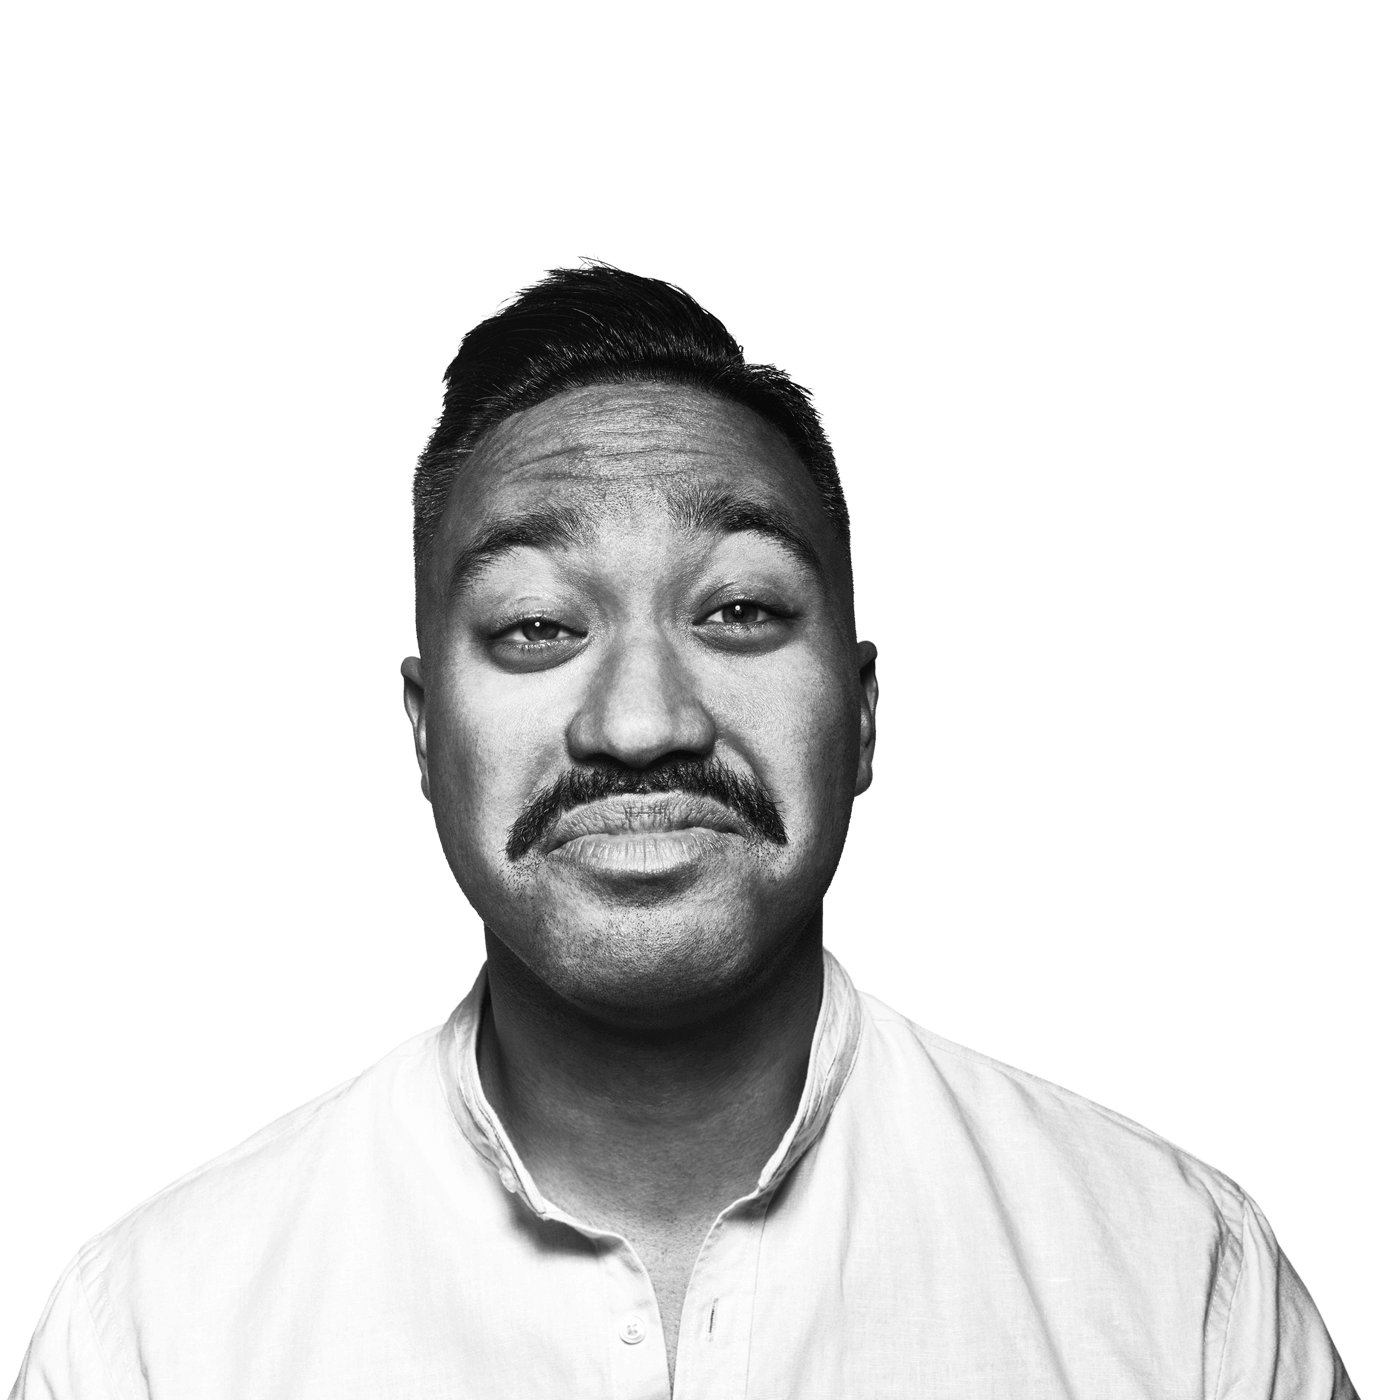 movember portraits